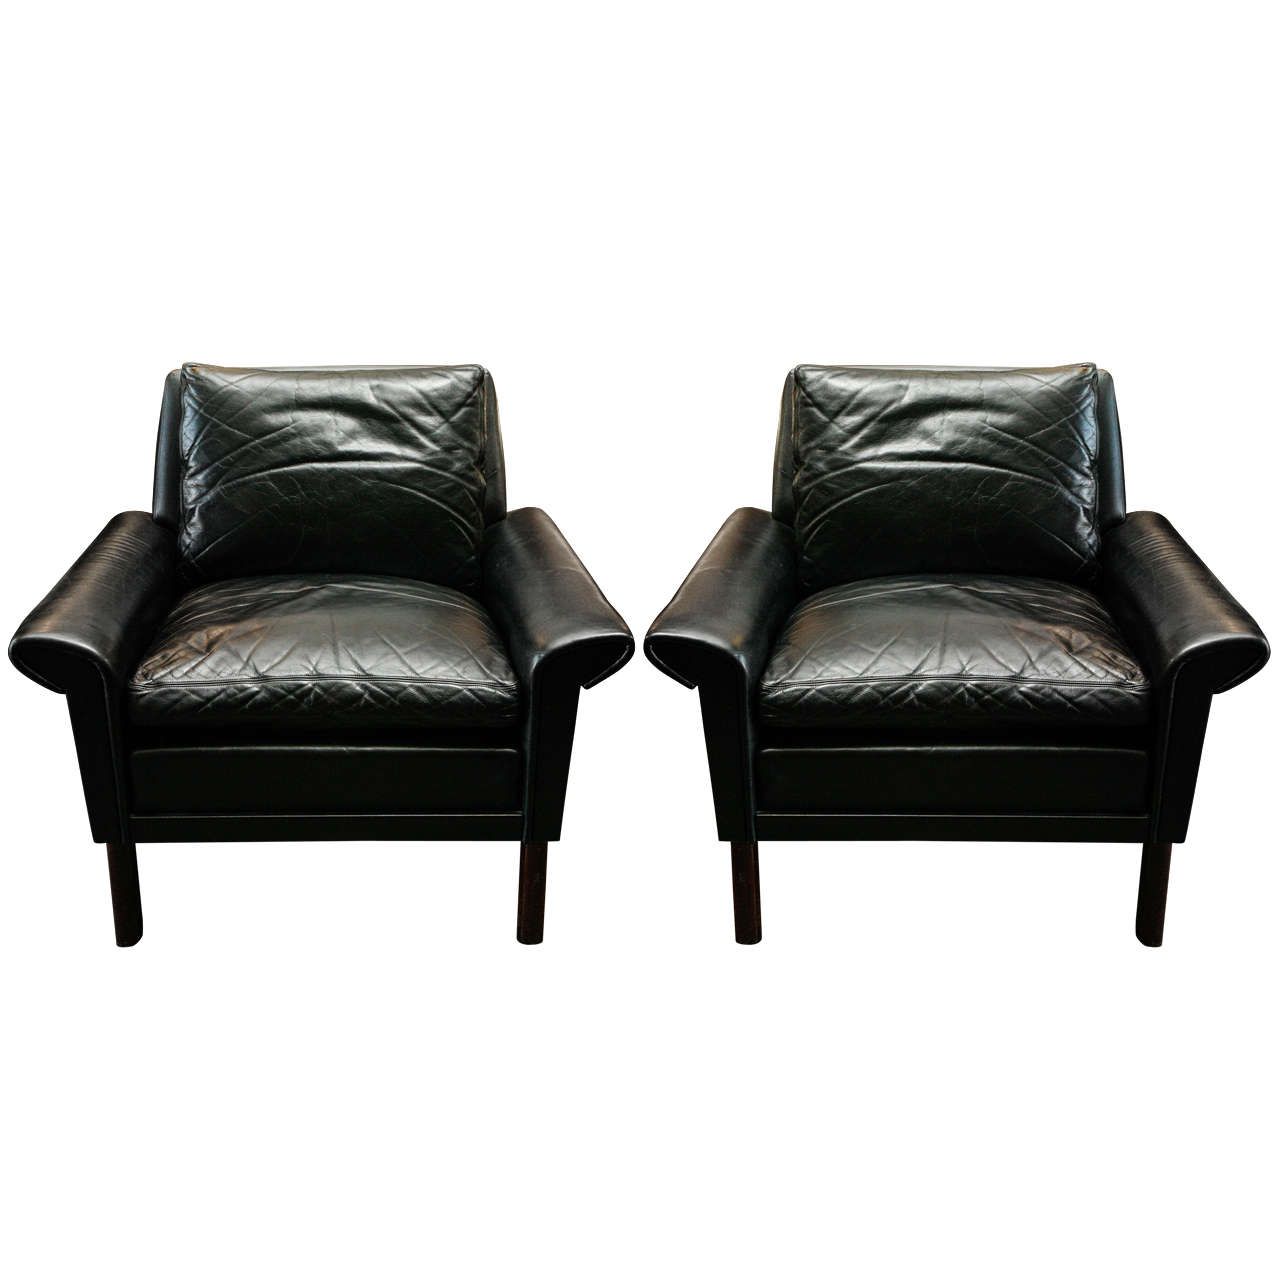 Mid Century Modern Danish Leather Arm Chairs at 1stdibs